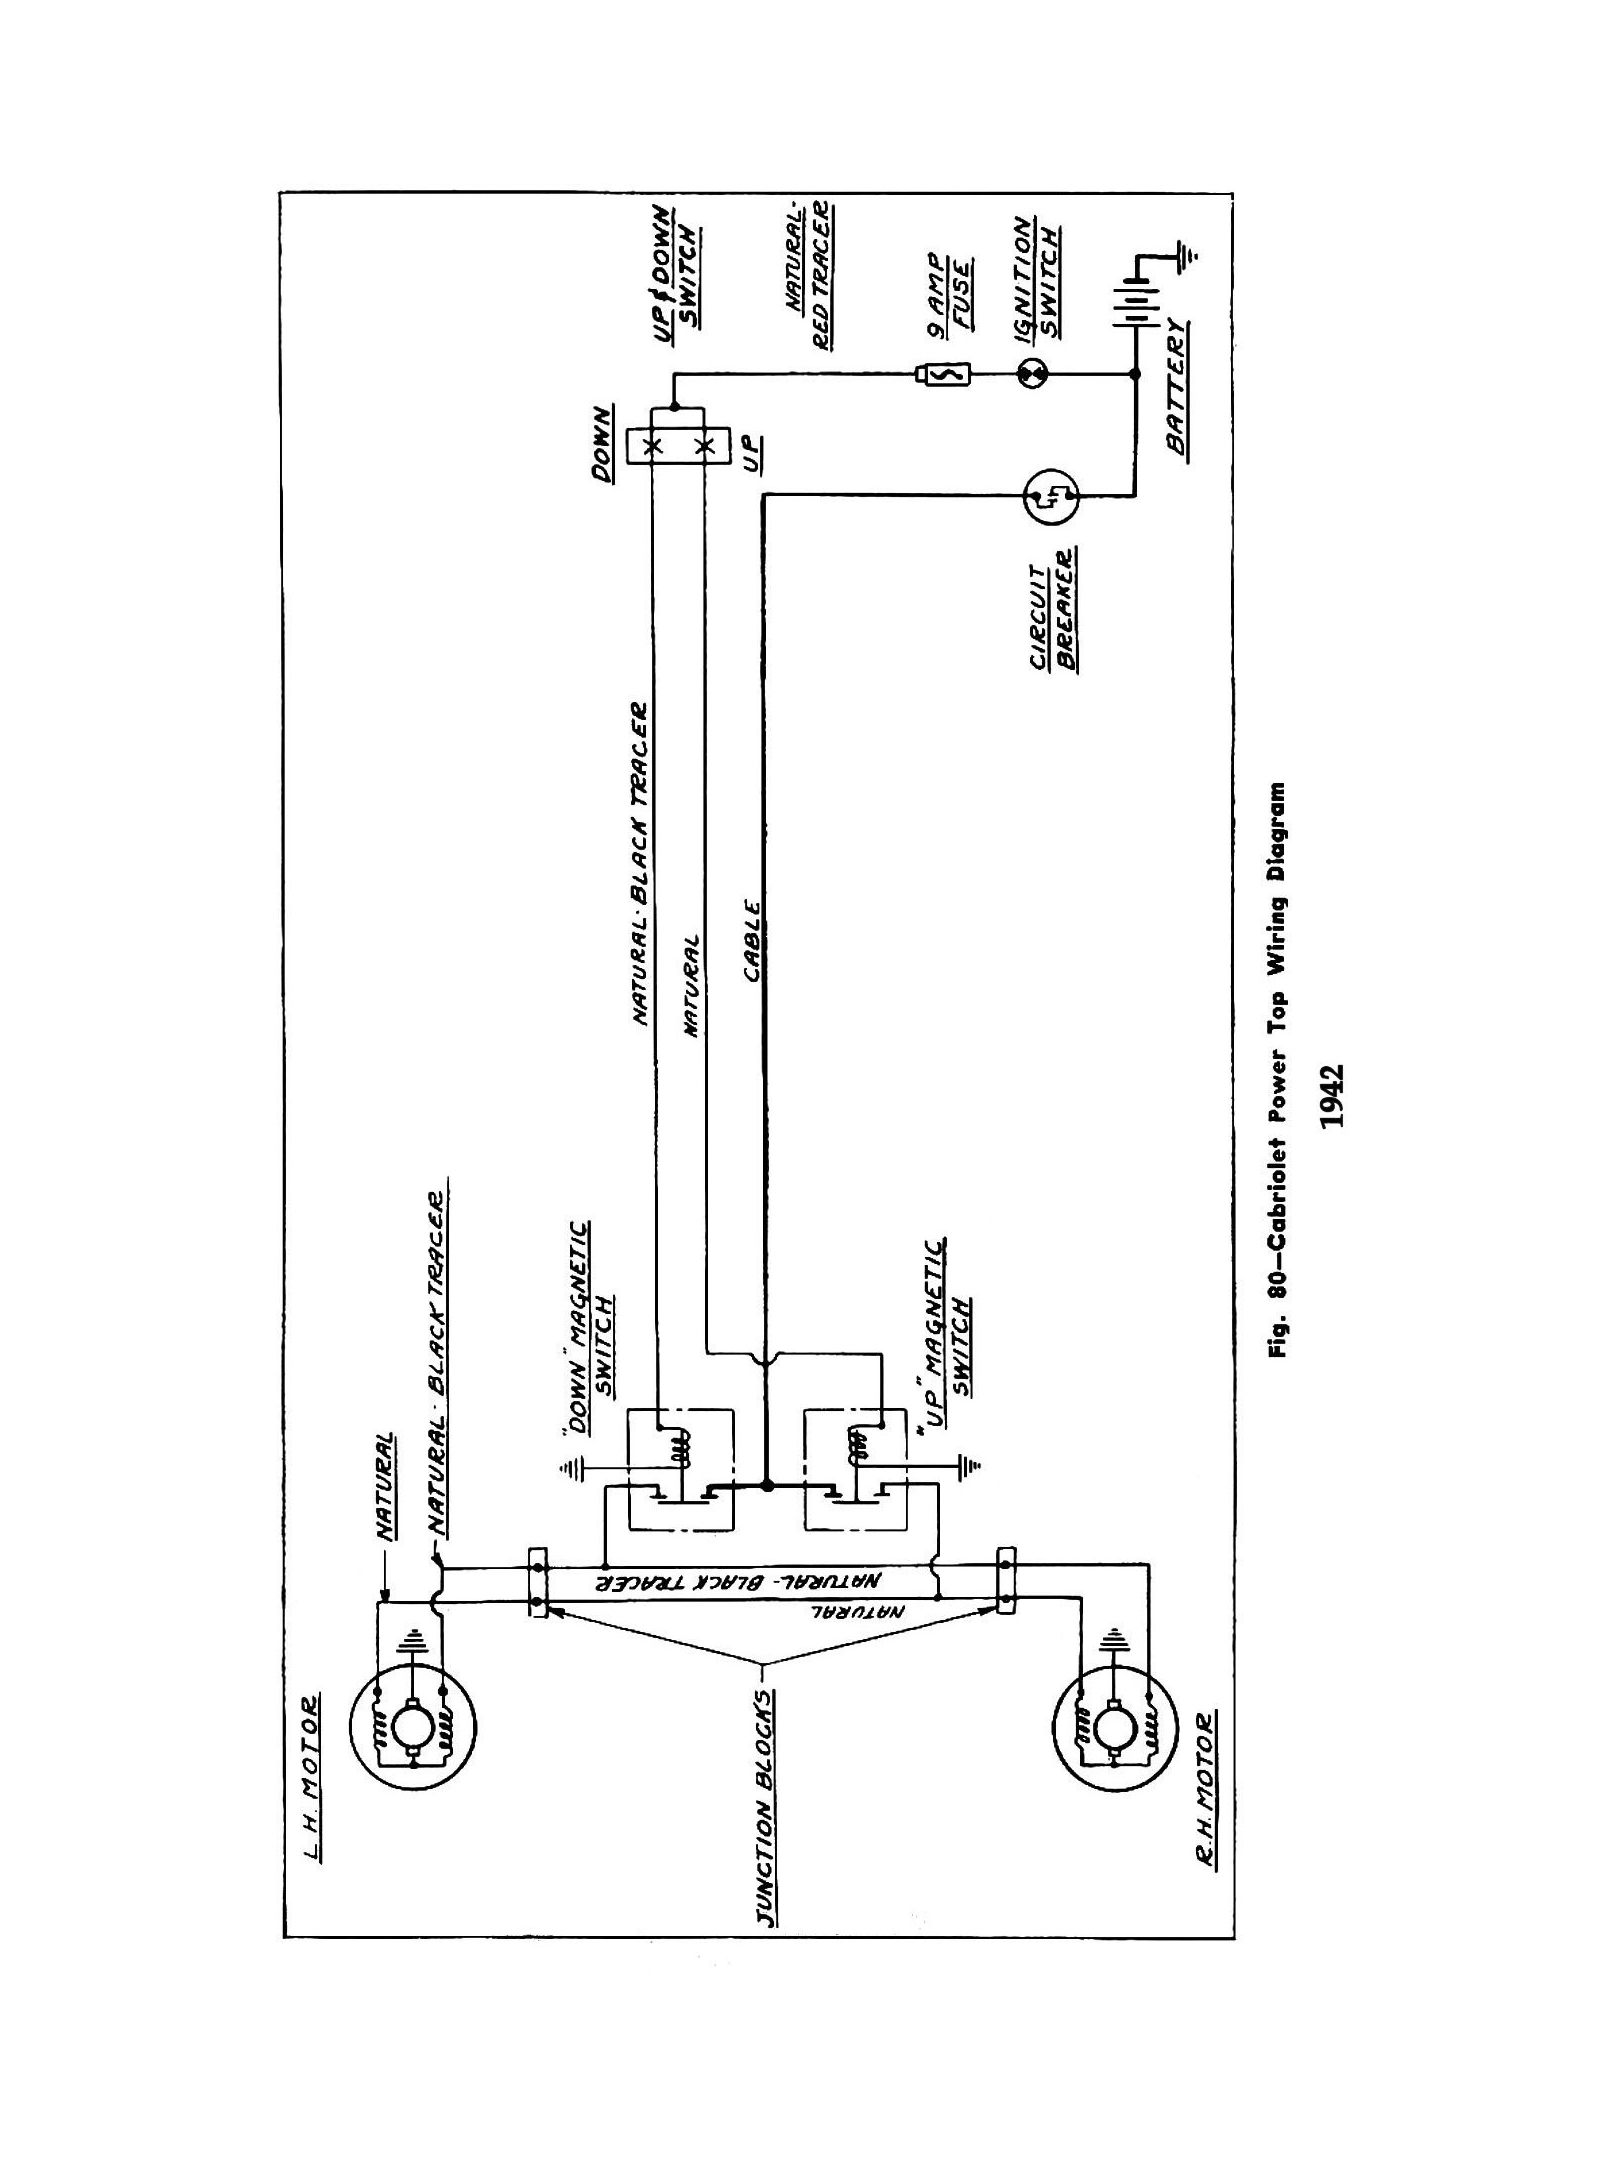 Chevy Wiring Diagrams 2005 Impala Headlight Diagram 1942 Truck Cabriolet Power Top